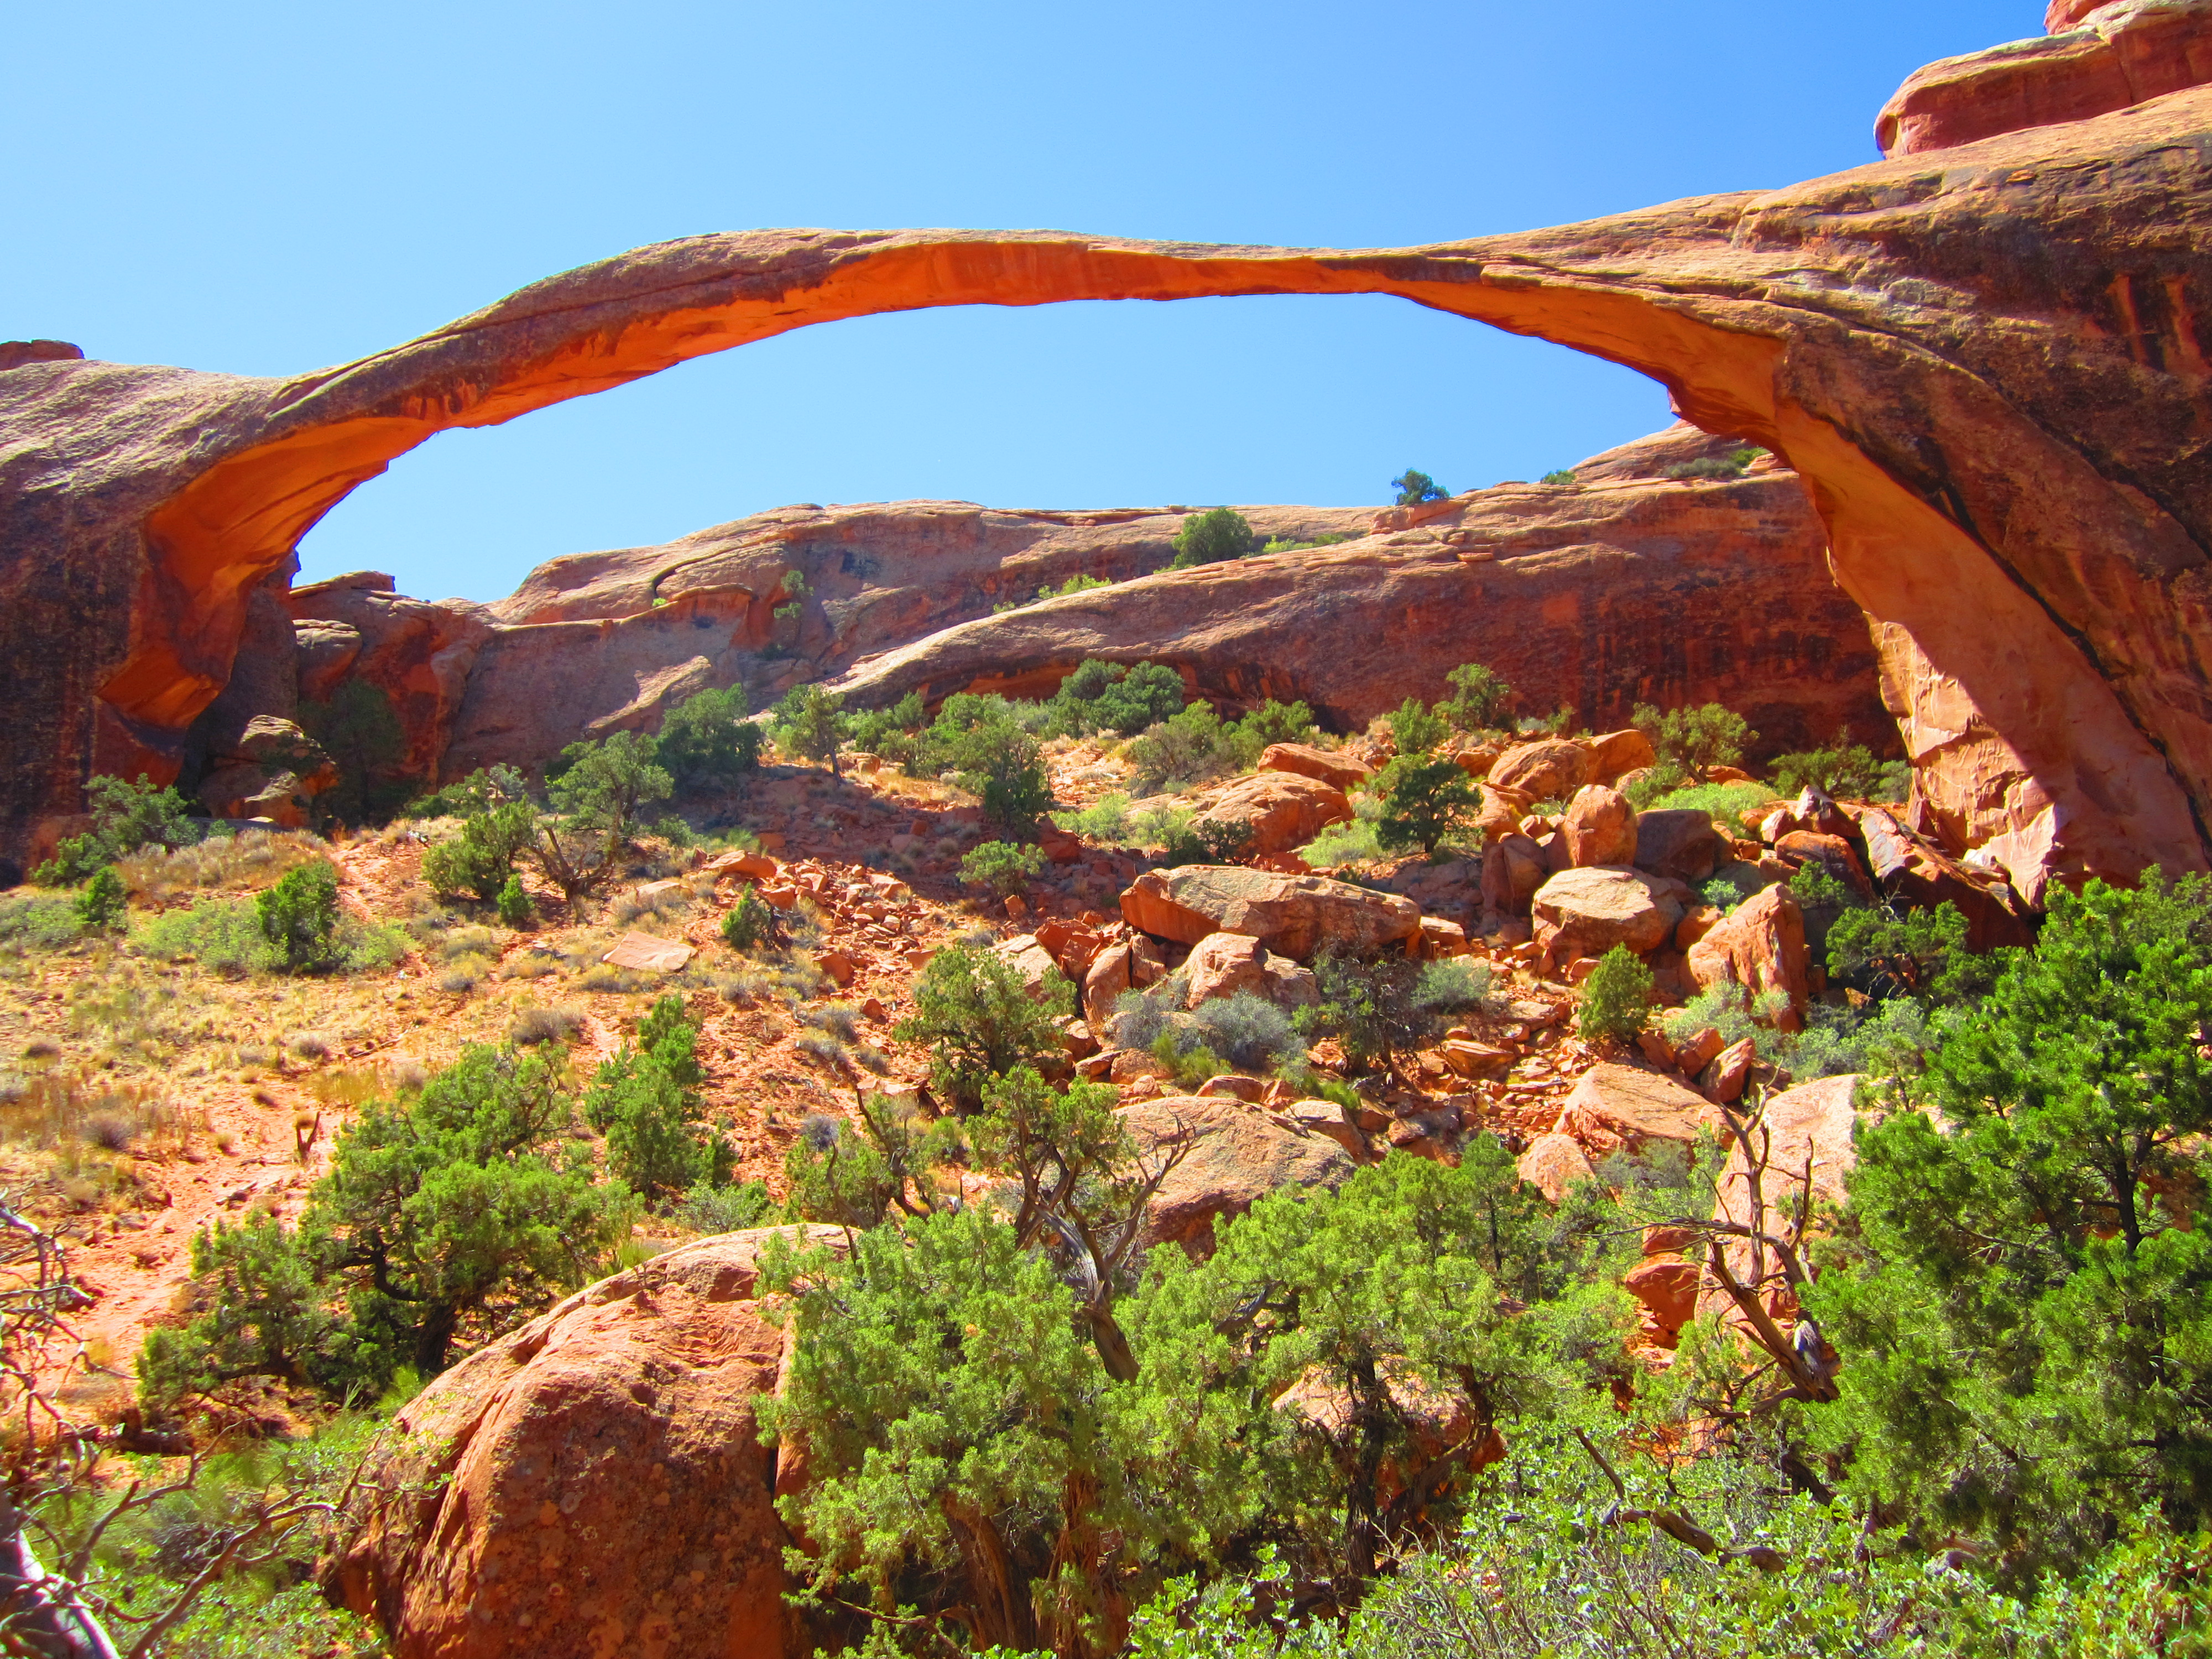 Miriam s Trip Blog This is the Fiery Furnace Hike